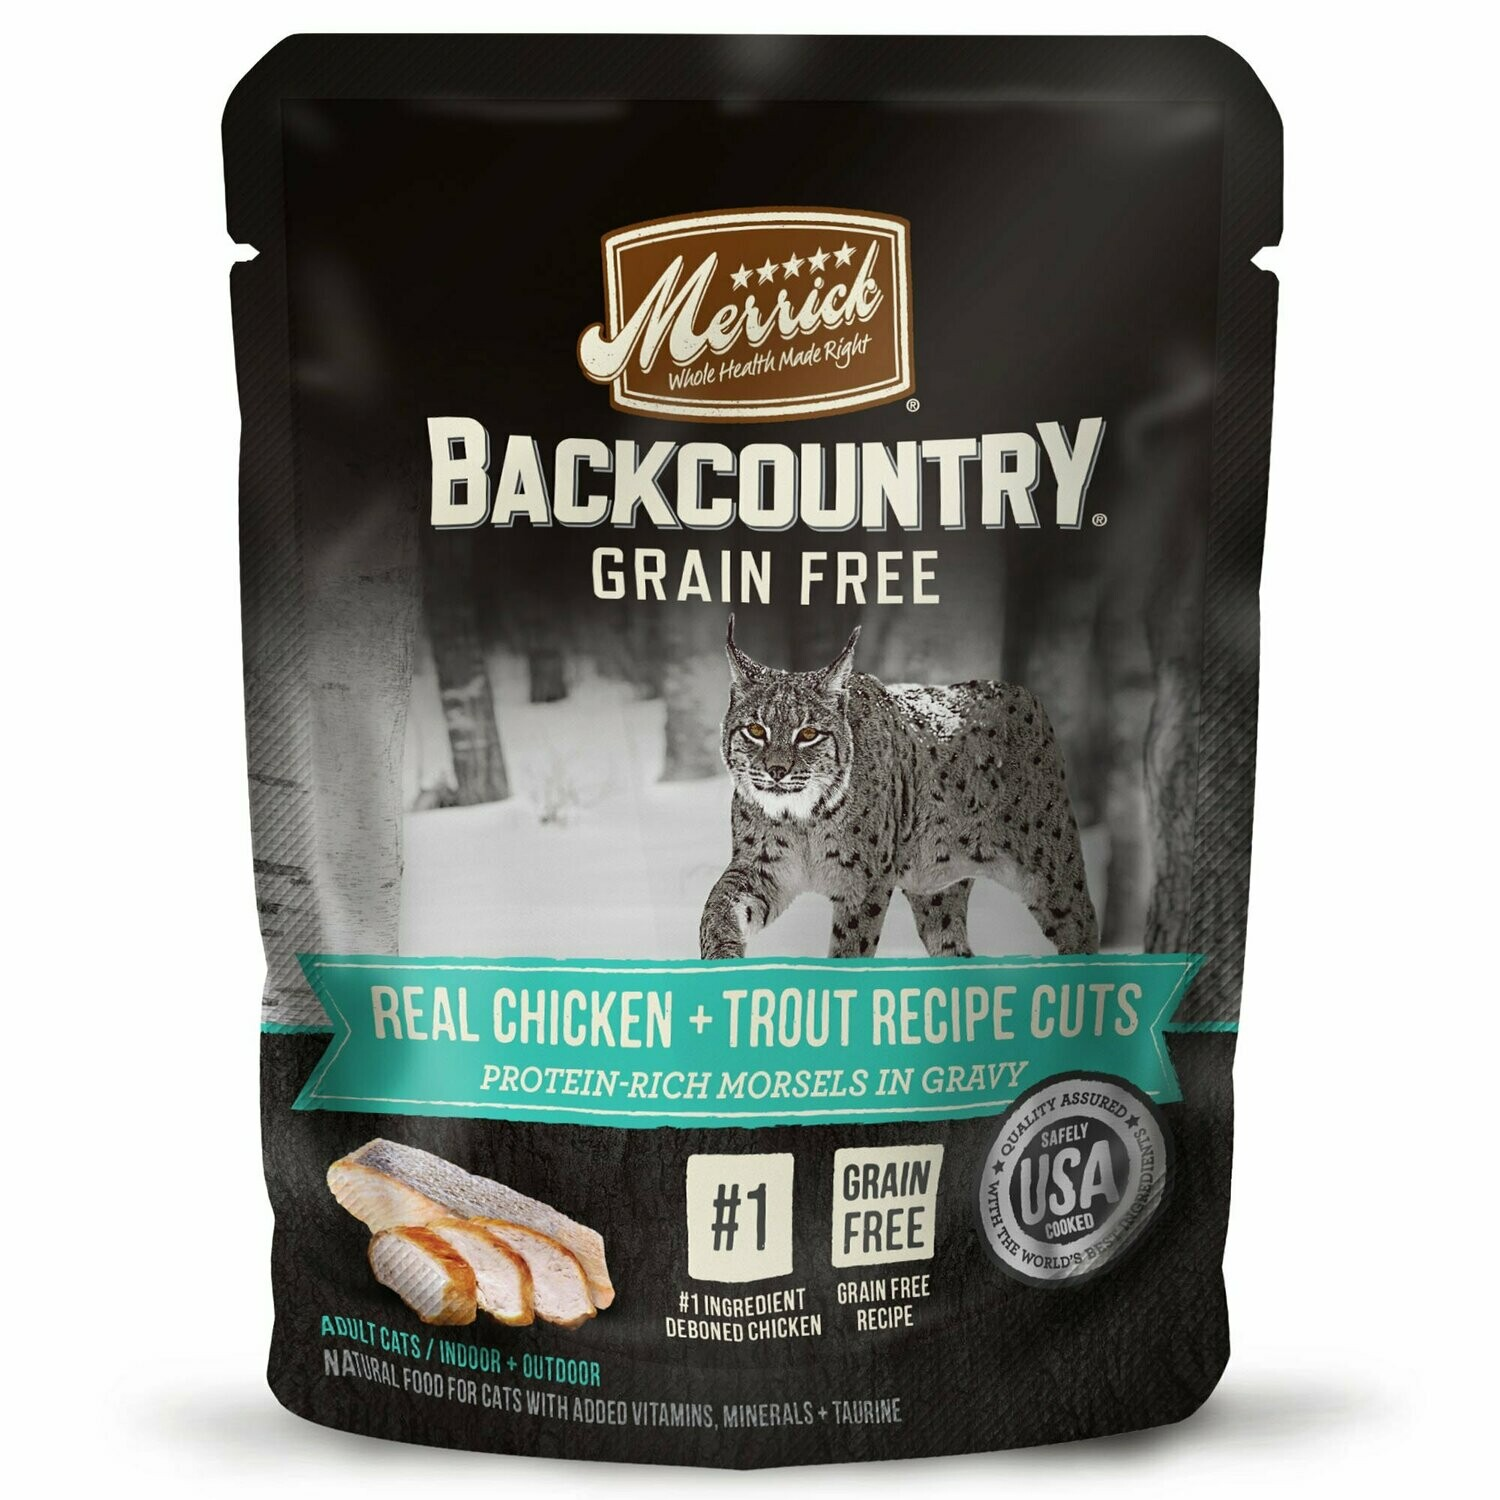 Merrick Backcountry Grain-Free Real Chicken  Trout Recipe Cuts Wet Cat Food 3 oz 24 count pouches (05/19) (A.R1/CW)